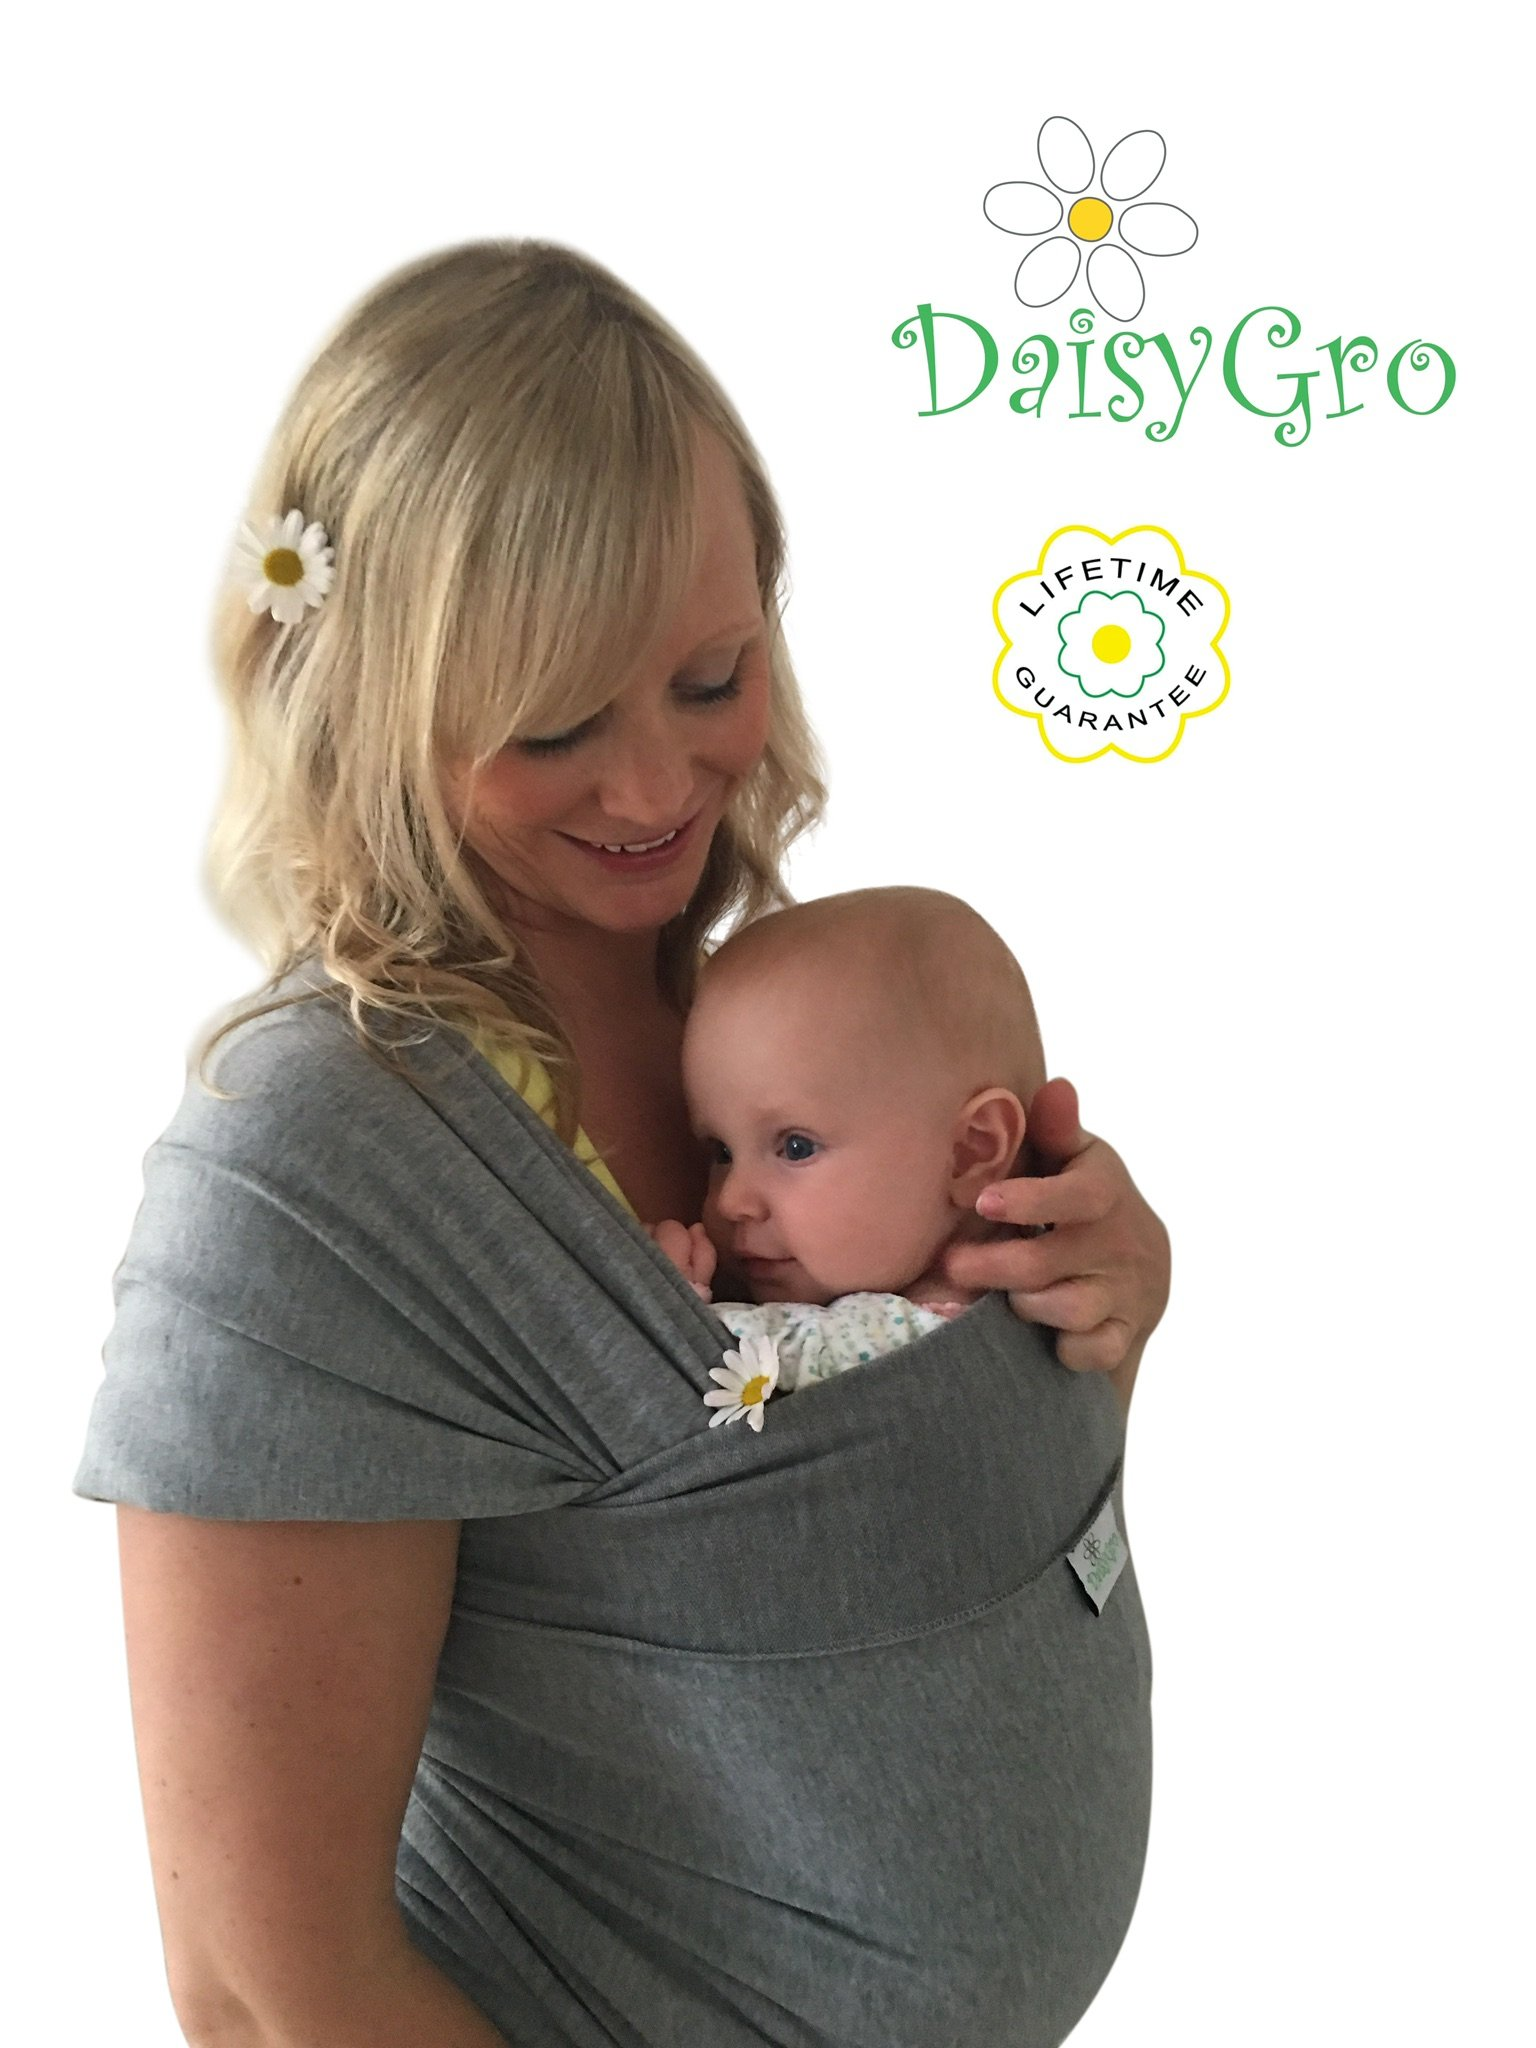 •Sale!• DaisyGro® Premium Baby Sling Carrier | Plus Size 16+ | Baby Wrap | Newborns, Infants, Toddlers | Breastfeeding Cover | Breathable Soft Cotton | Grey | Ideal Gift DaisyGro A SECURE BOND created making baby happy and content close to your warm body where he/she can hear your heartbeat. FREE HANDS for everyday tasks around the home or out in the world. Also a great idea for walking your way back to your PRE-PREGNANCY FITNESS level without the need to find childcare! All this whilst your baby is warm and snug close to you. 2 SIZE OPTIONS and EASY TO USE versatile design with no straps or buckles - comfortable for both baby and you! Researched and manufactured to the perfect length. Can be used for different holds. Perfect for breastfeeding. Safe for newborns, babies and toddlers up to 35 lbs. Comes in a handy bag so the wrap can be stored away when not in use. 1